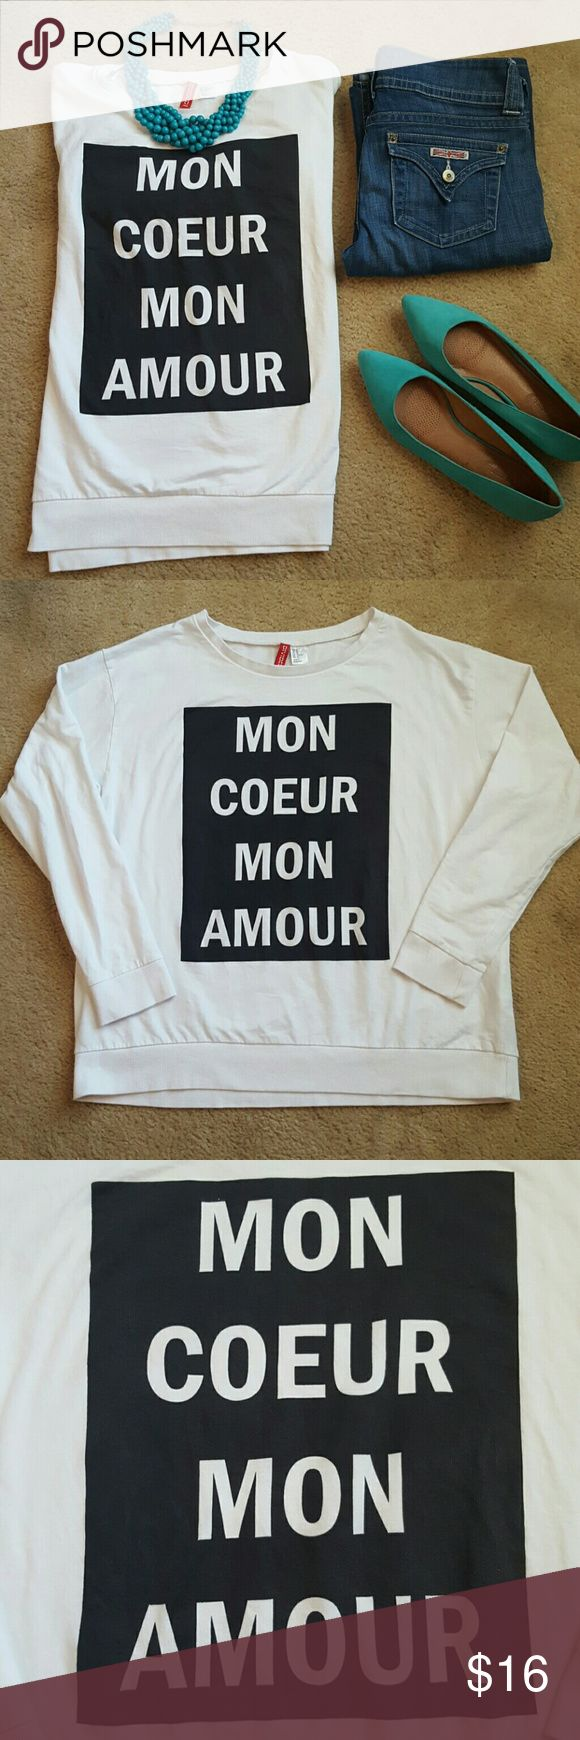 "✂FINAL PRICE✂ H&M Divided graphic sweatshirt Divided for H&M oversized lightweight sweatshirt. Wide neck. Graphic ""Mon Coeur Mon Amour"" meaning I love you with all my heart.   Excellent condition.   Size medium. Underarm to underarm 22"" length 24""  **shoes also available** H&M Tops Sweatshirts & Hoodies"